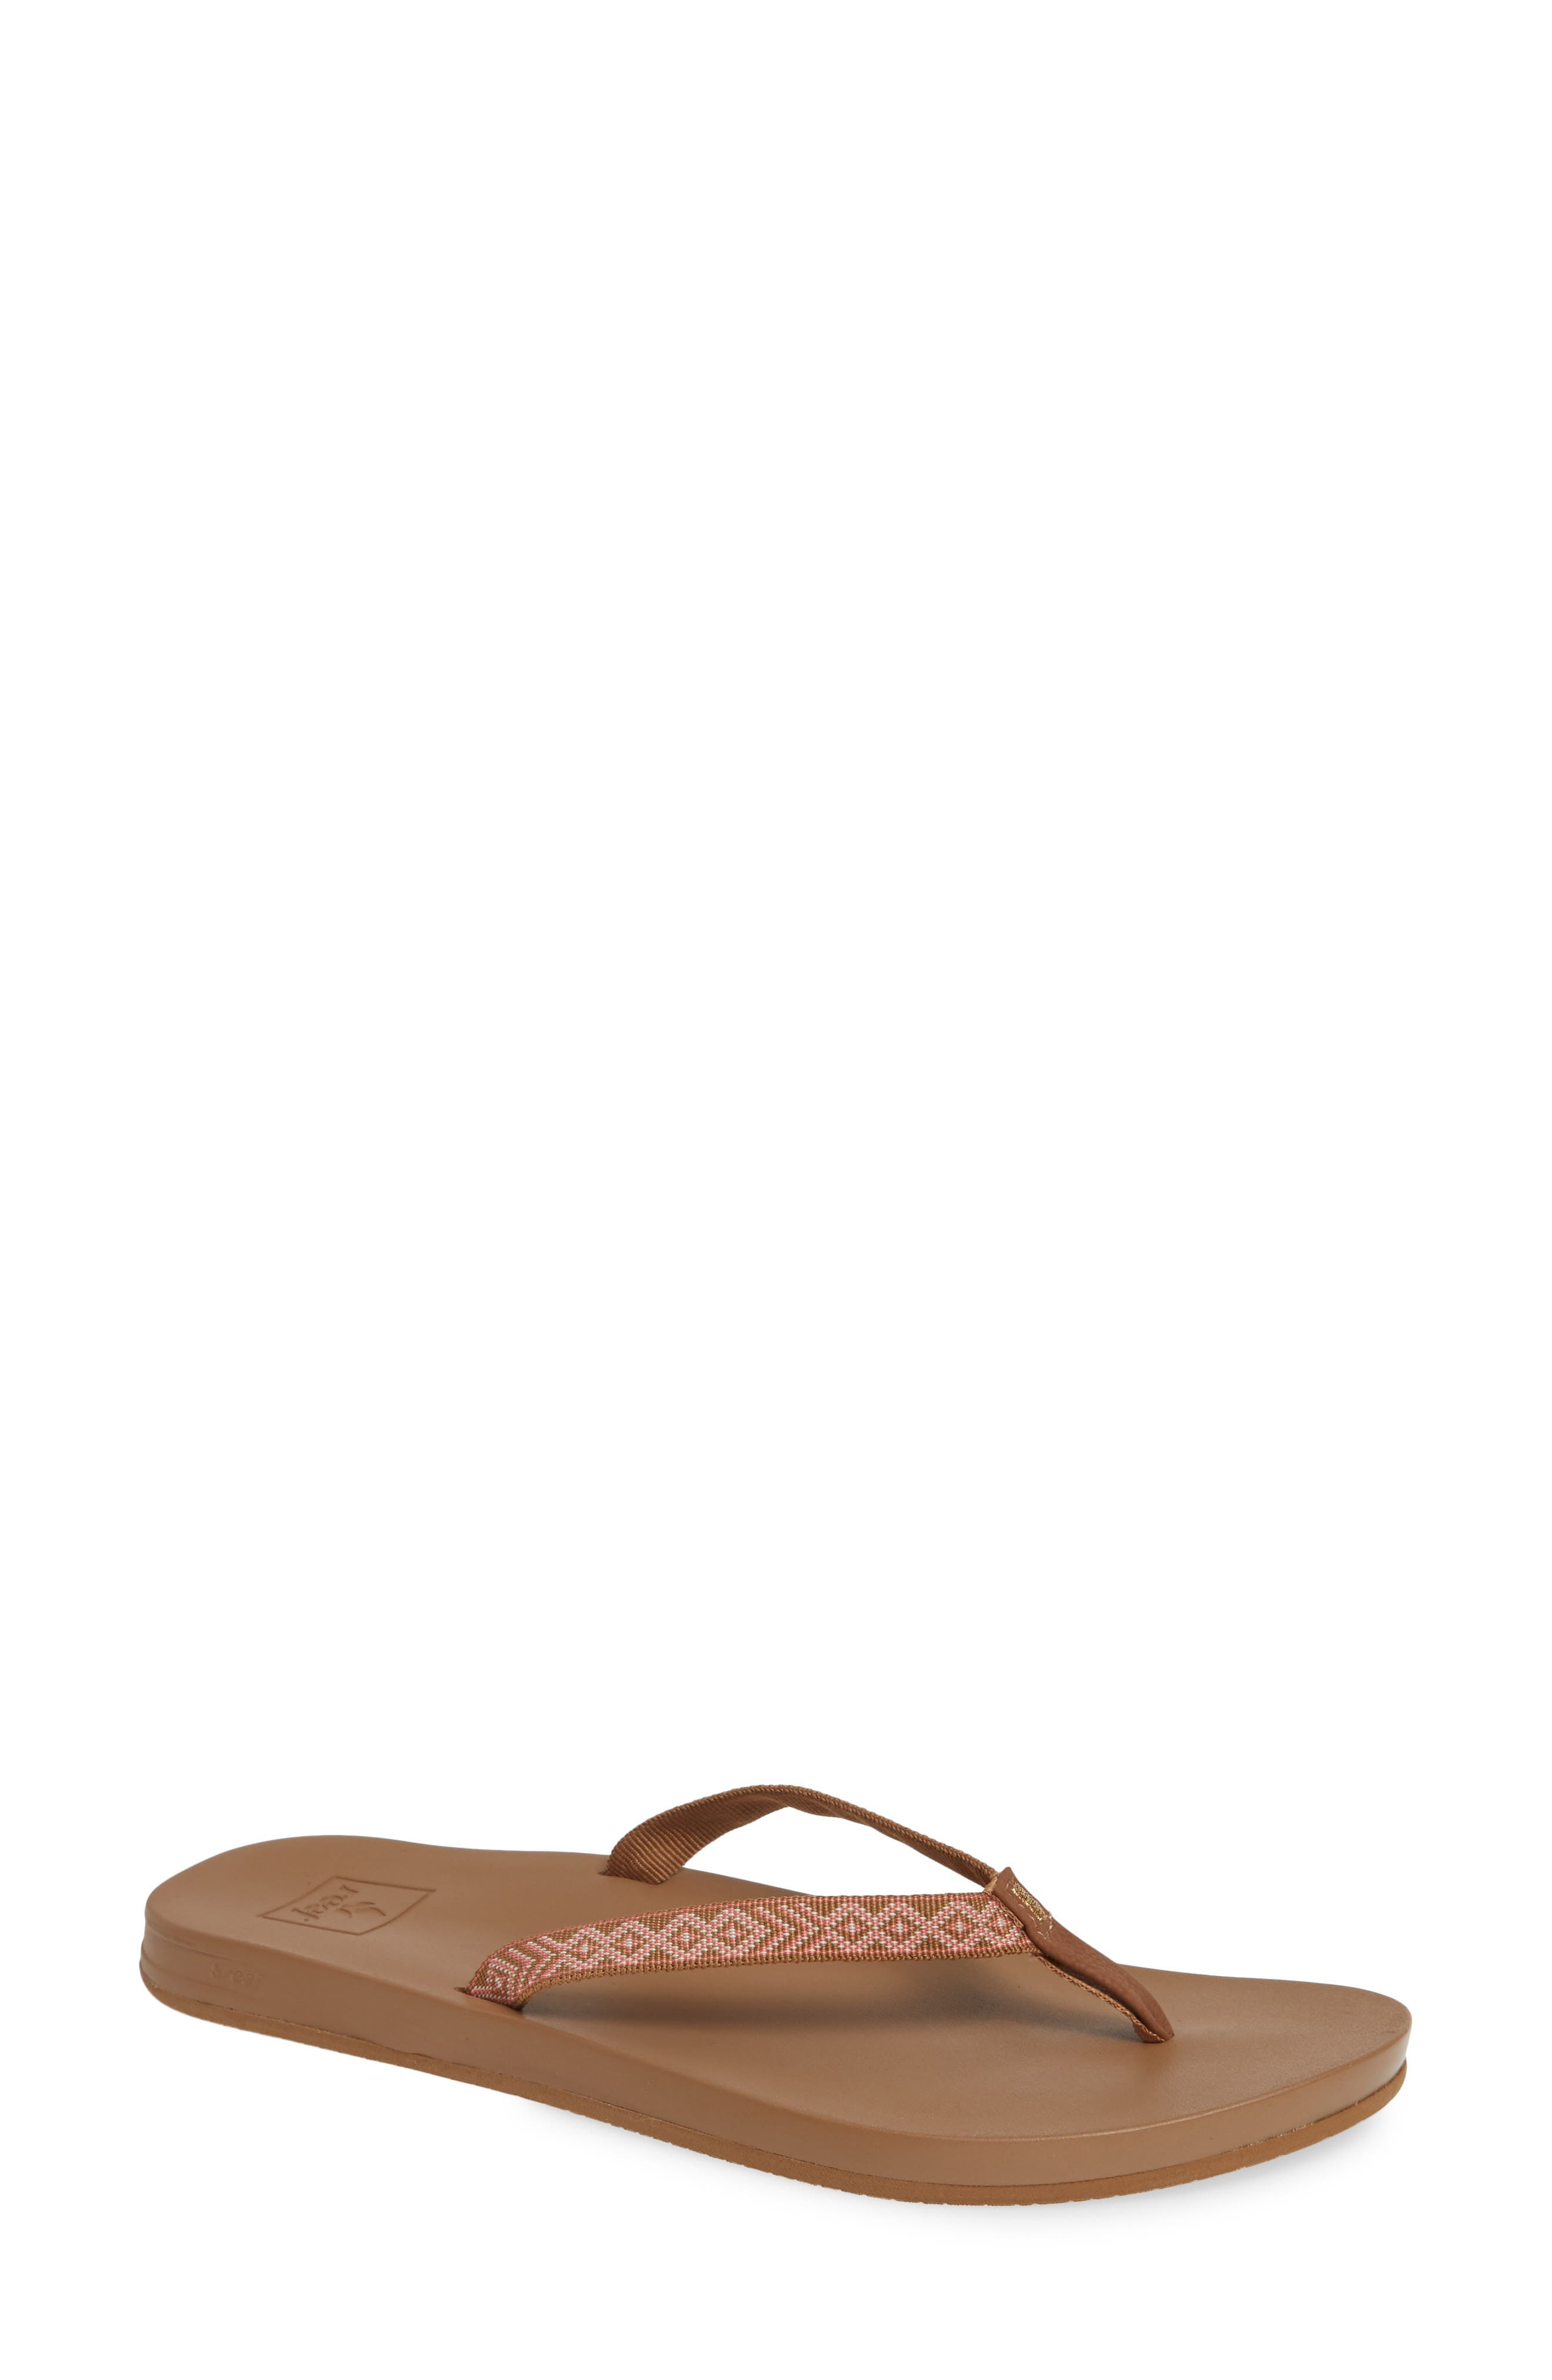 Cushion Bounce Flip Flop,                         Main,                         color, NATURAL